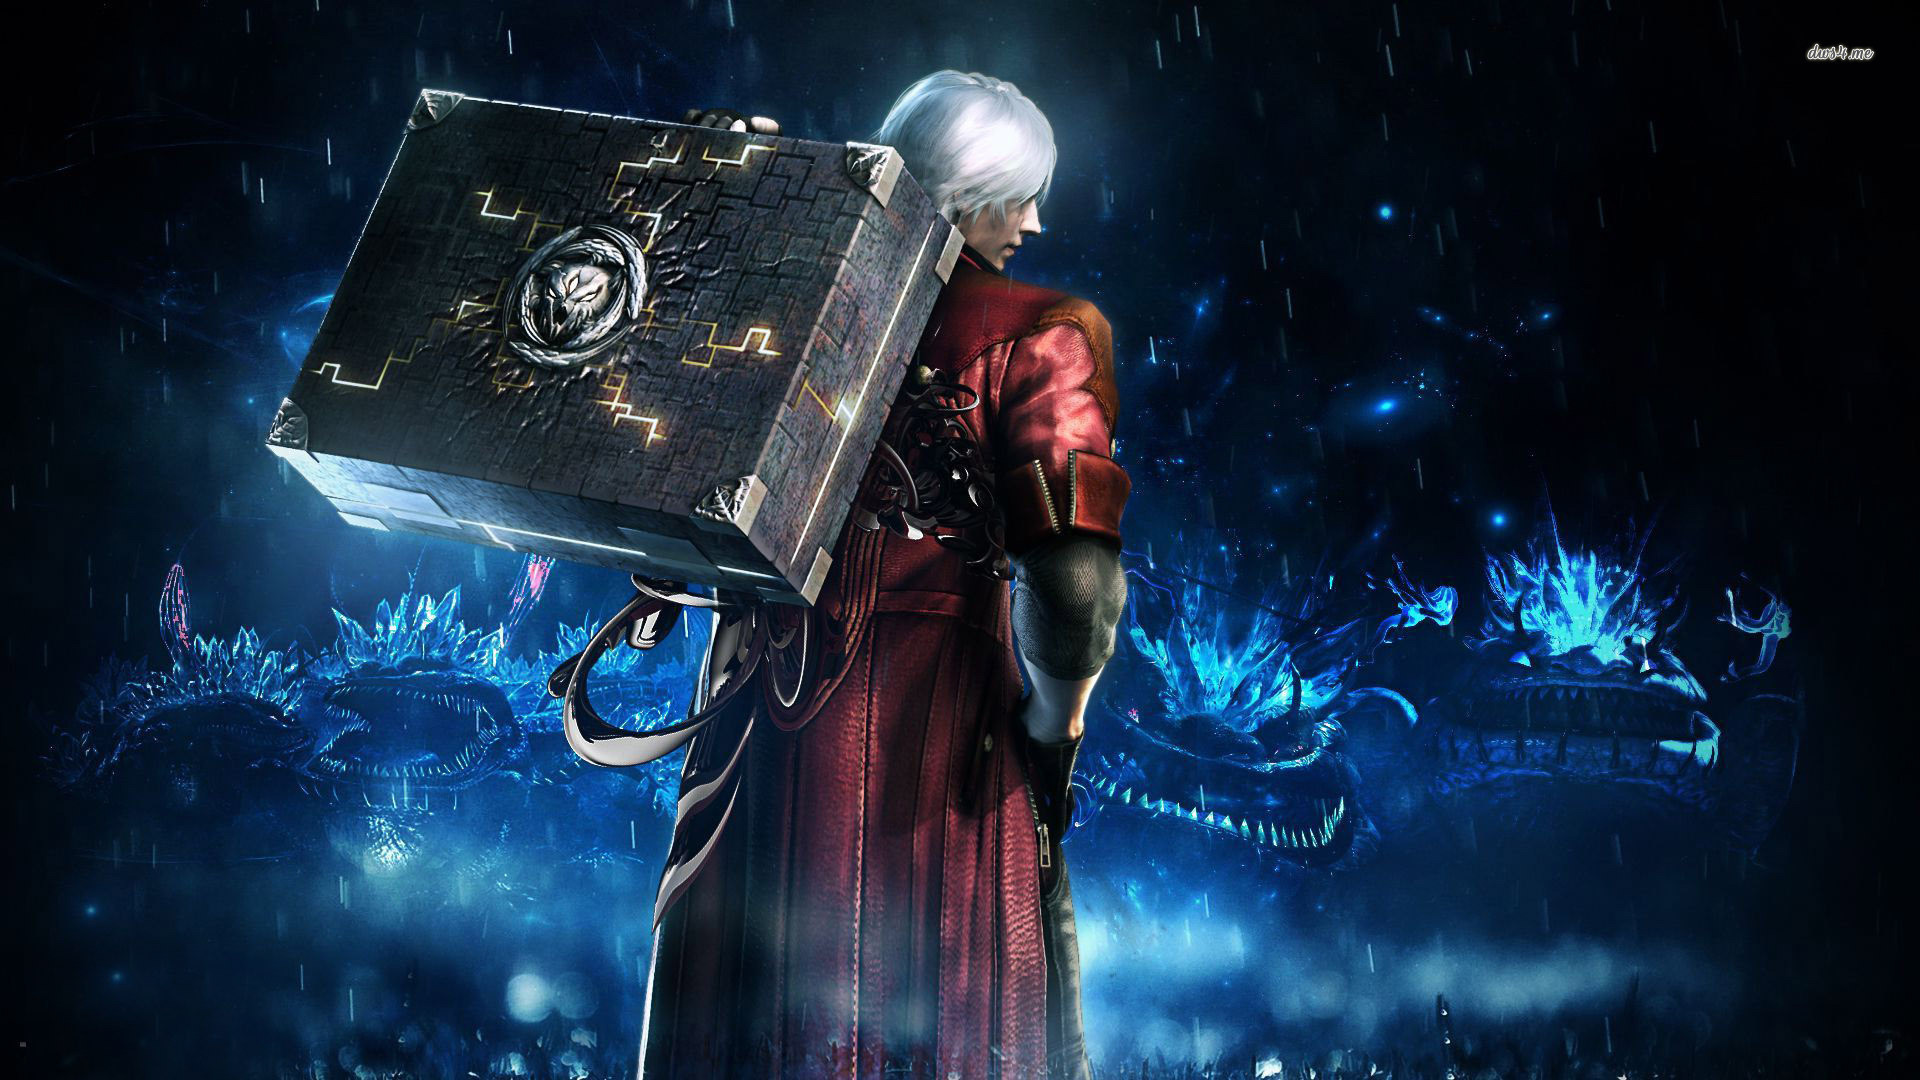 devil may cry 3 wallpaper  62  images